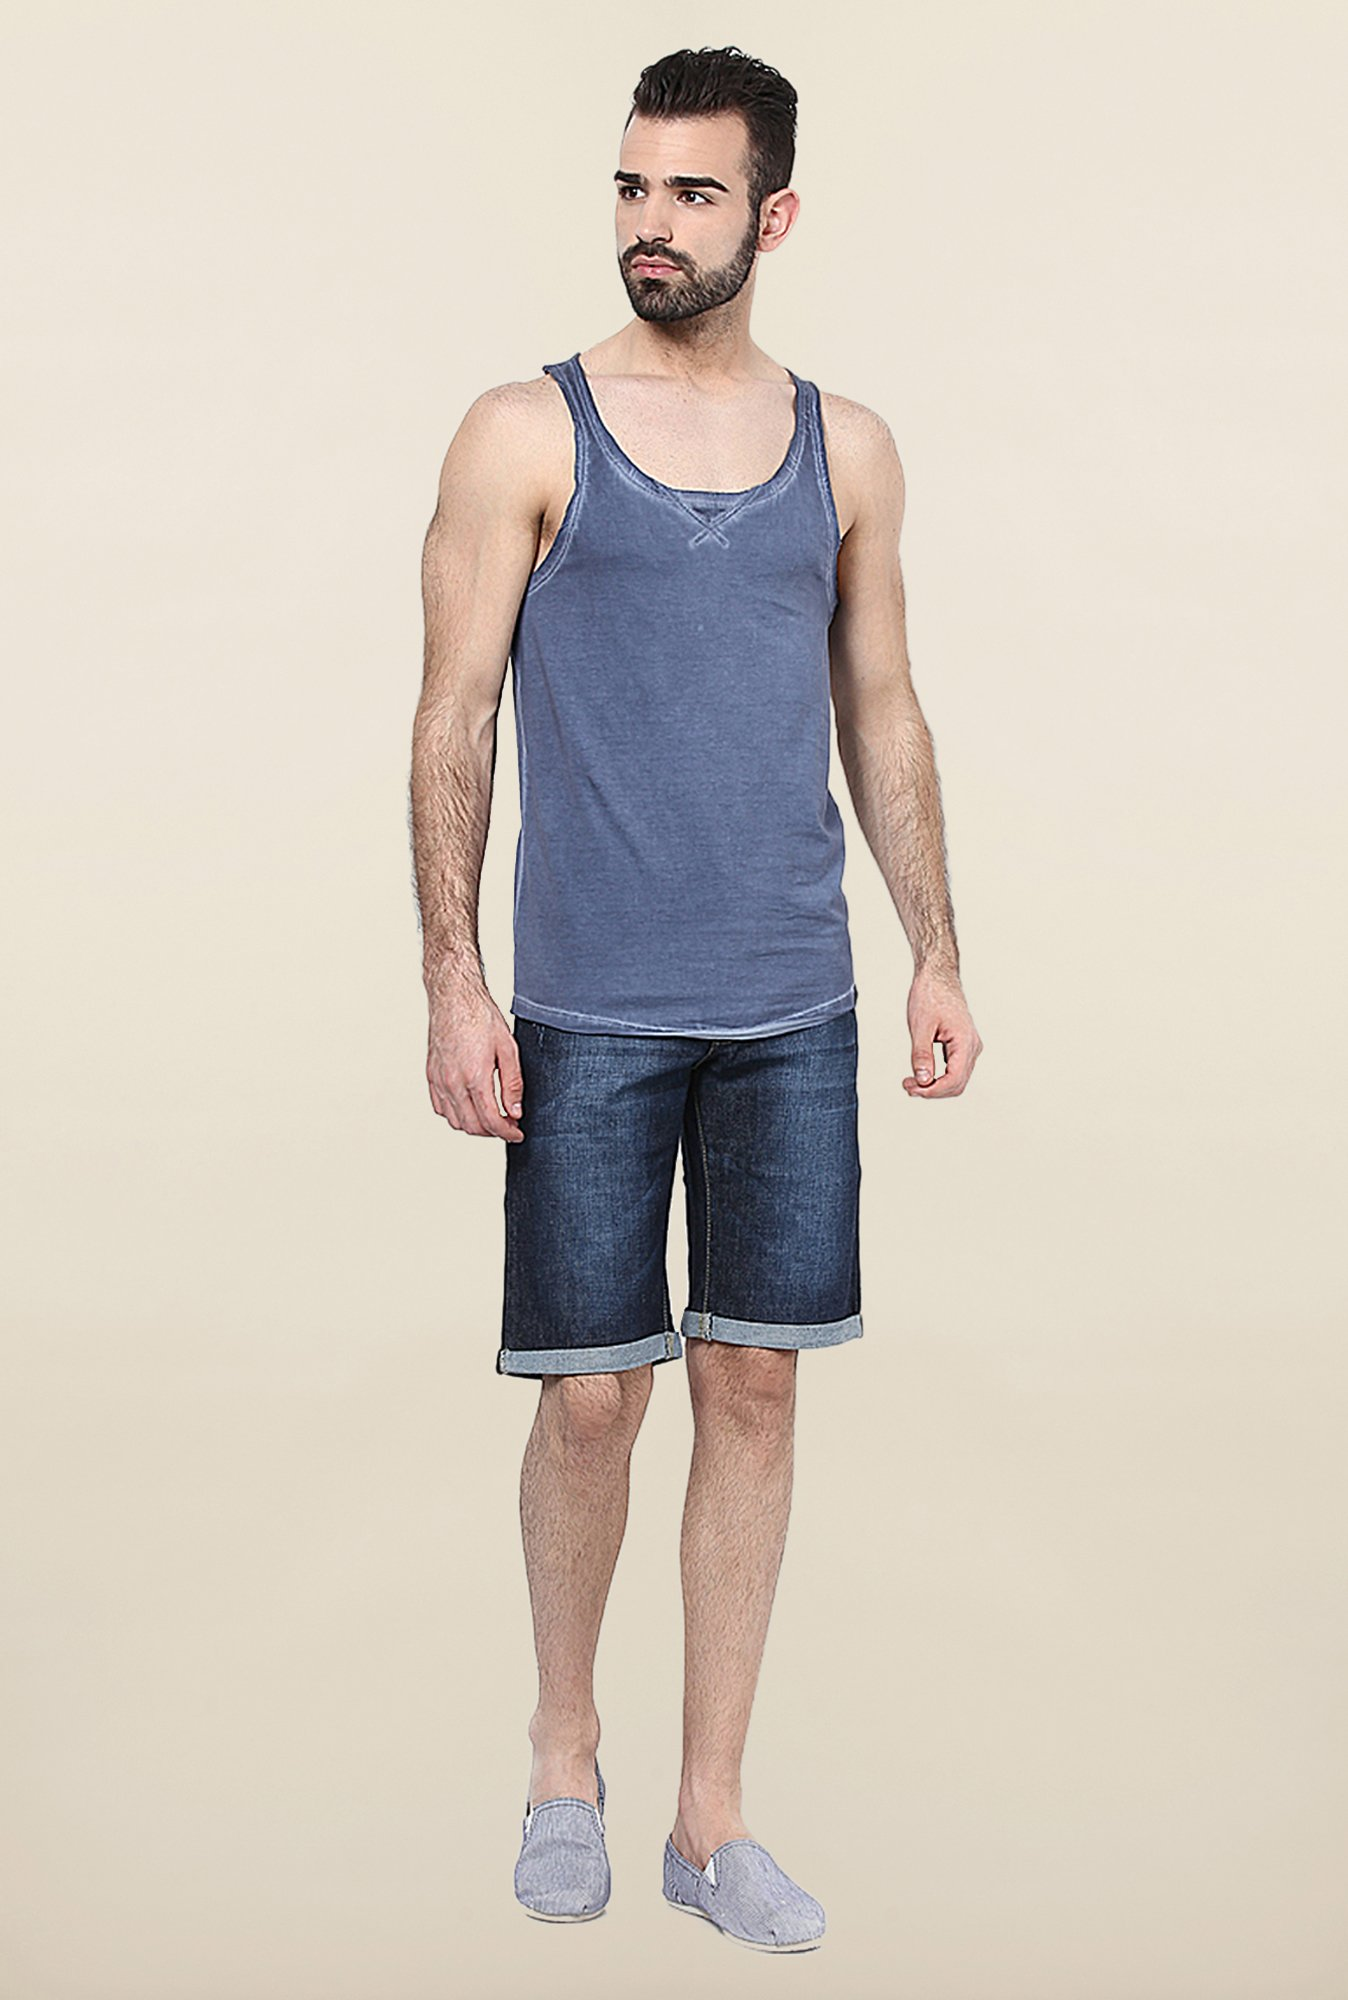 Jack & Jones Blue Solid Sleeveless Vest